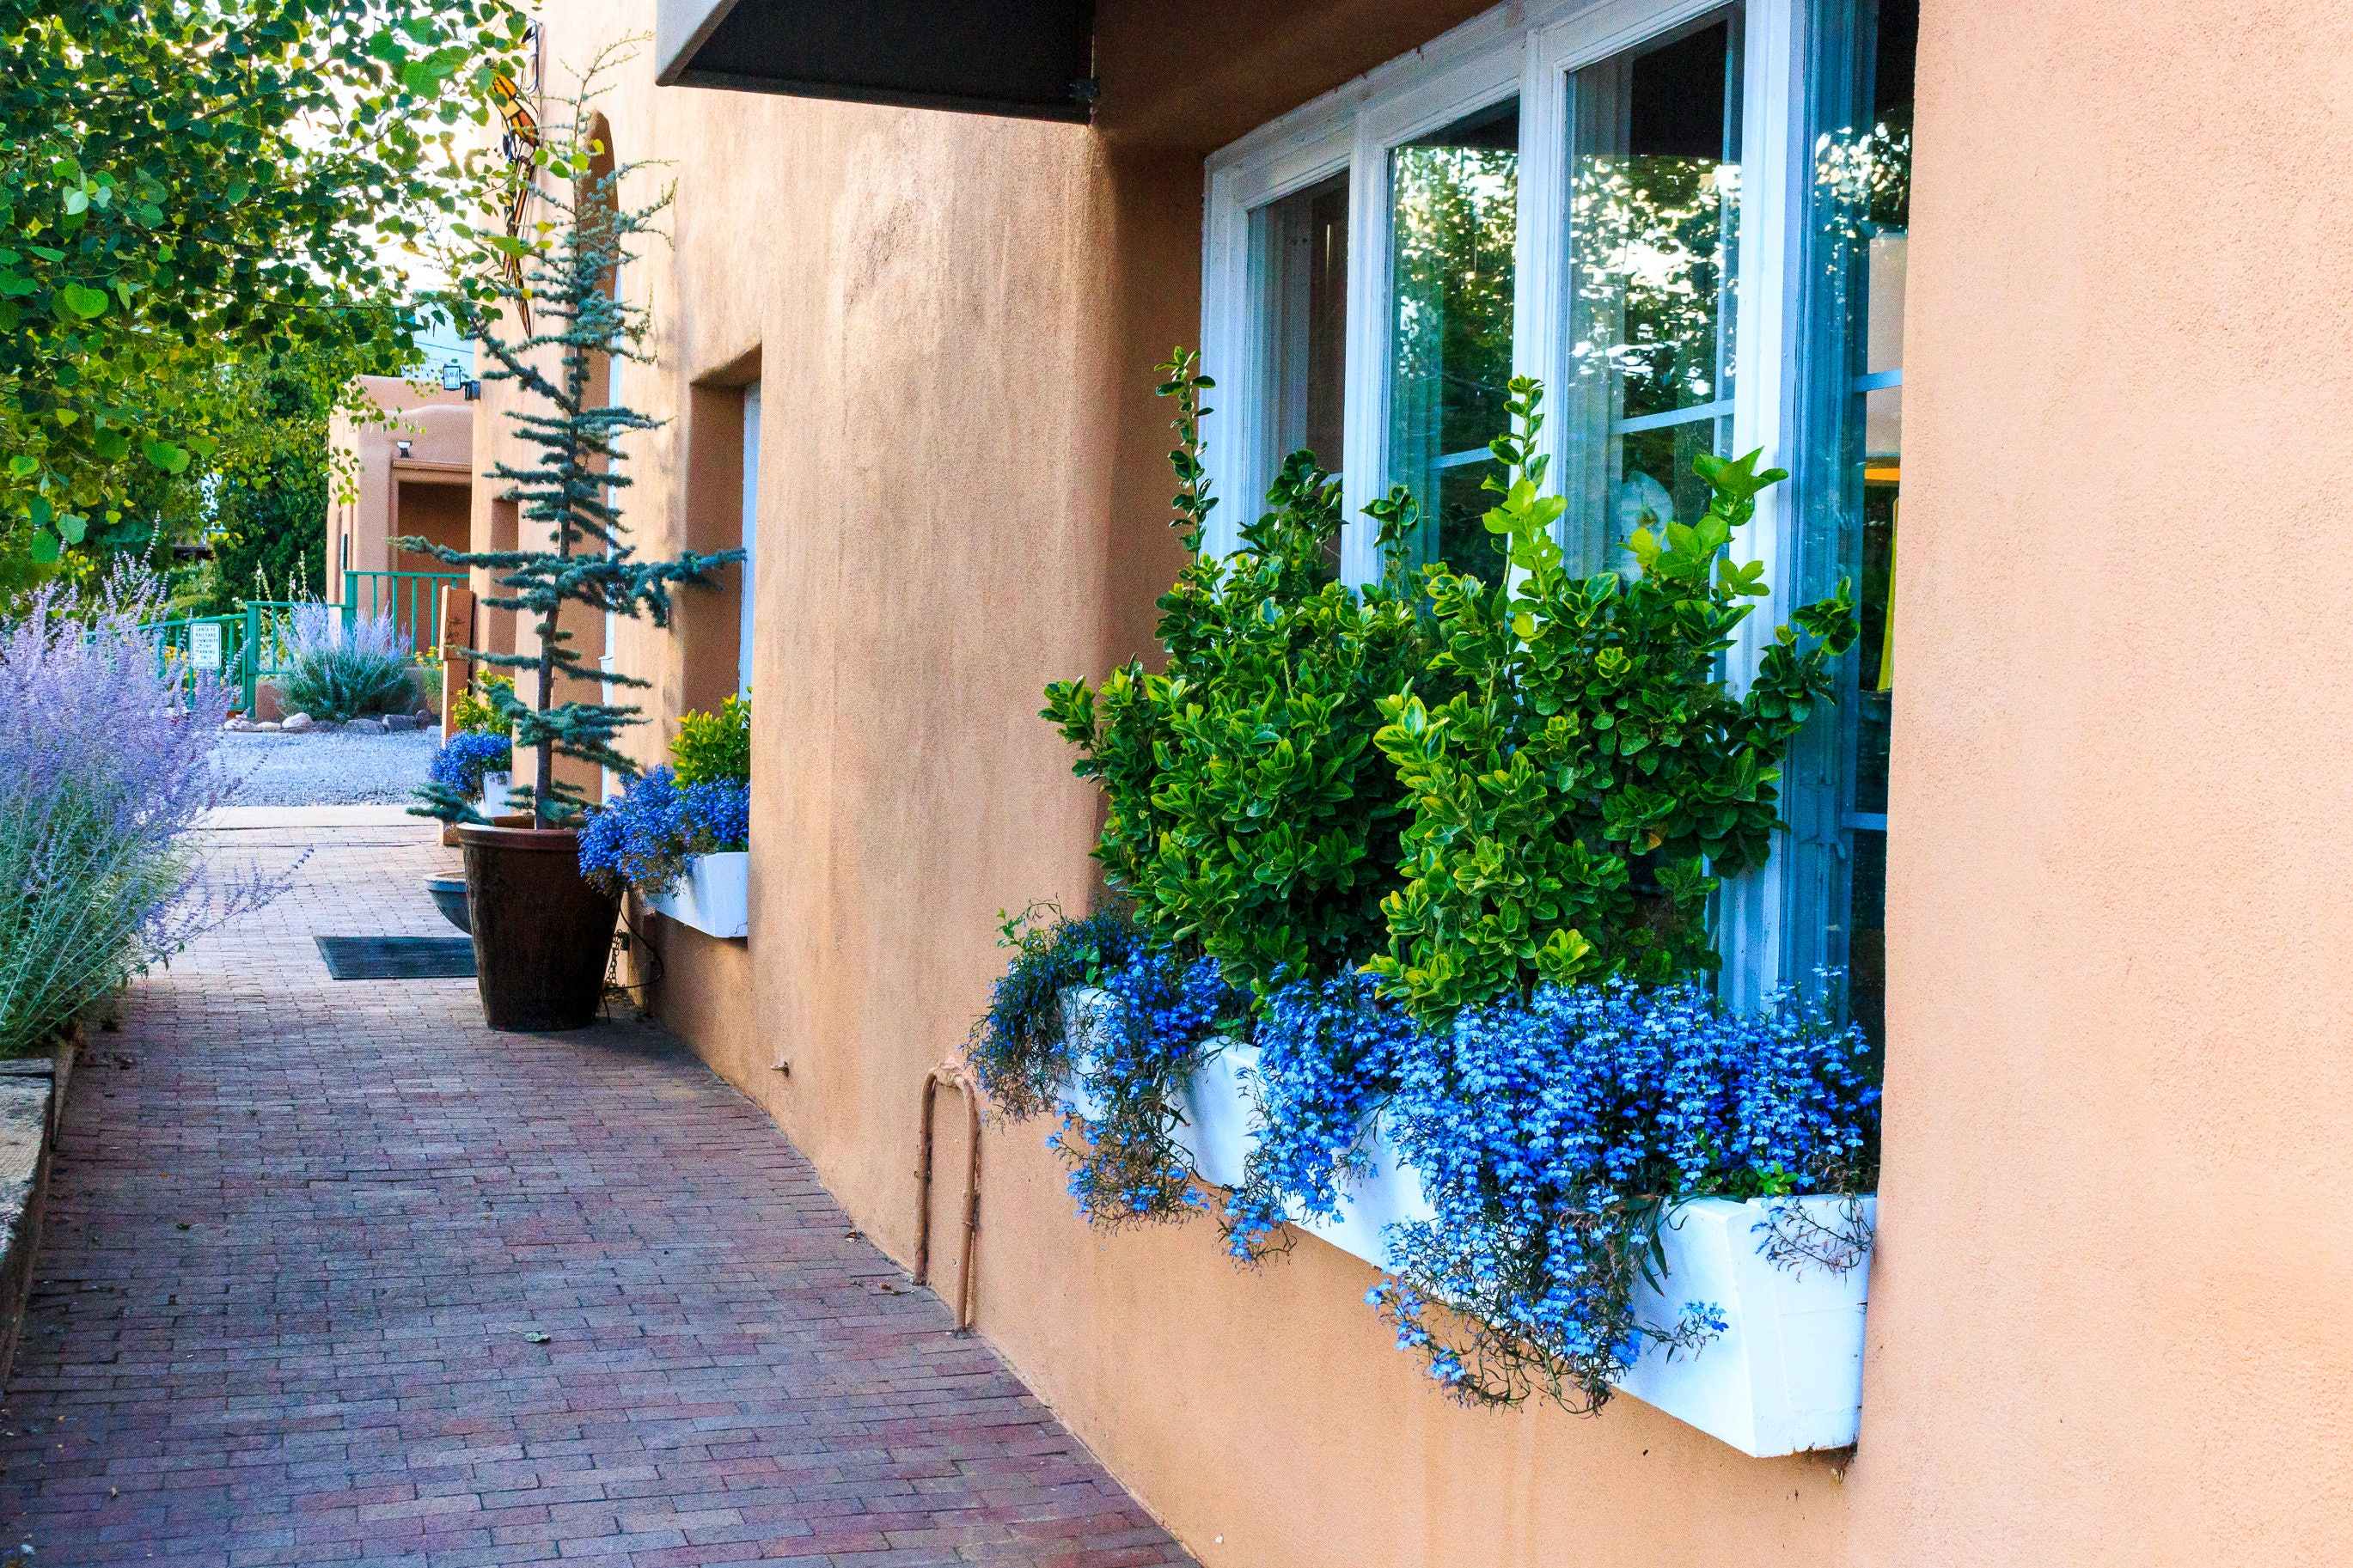 Canvas Santa Fe >> A Window Box In Santa Fe New Mexico Prints Matted And Mounted